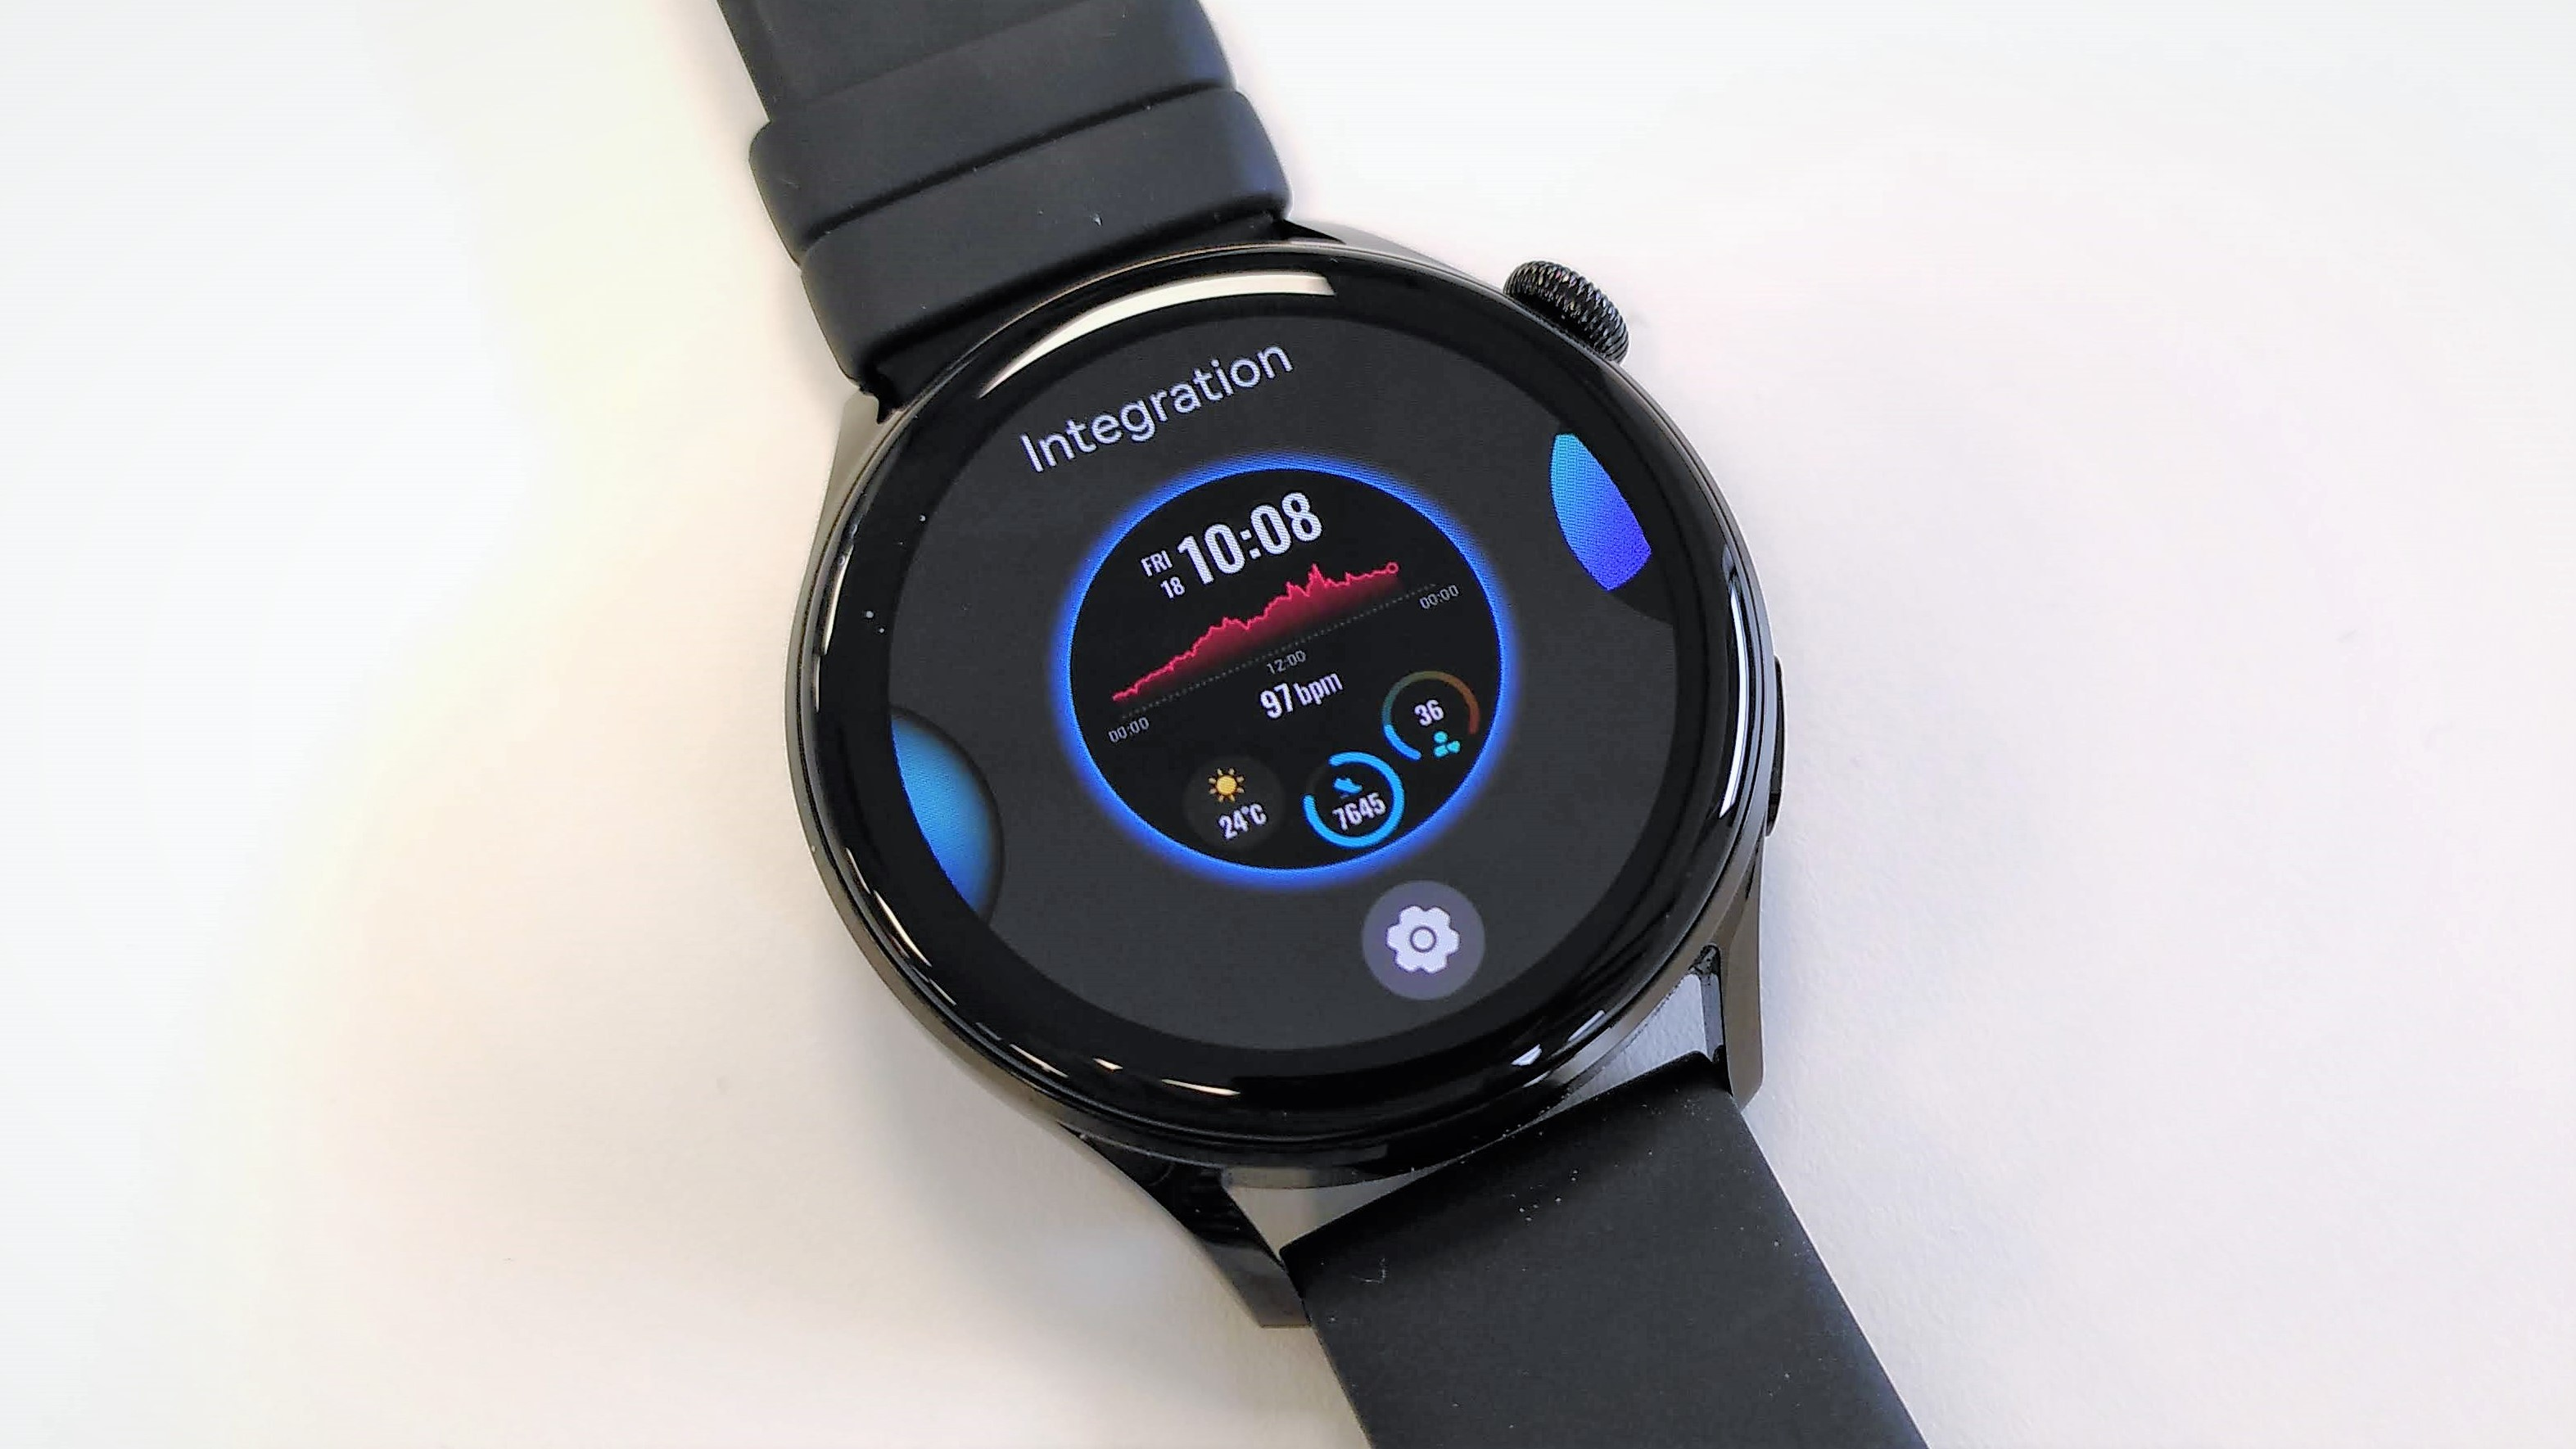 Selecting a watch face on the Huawei Watch 3